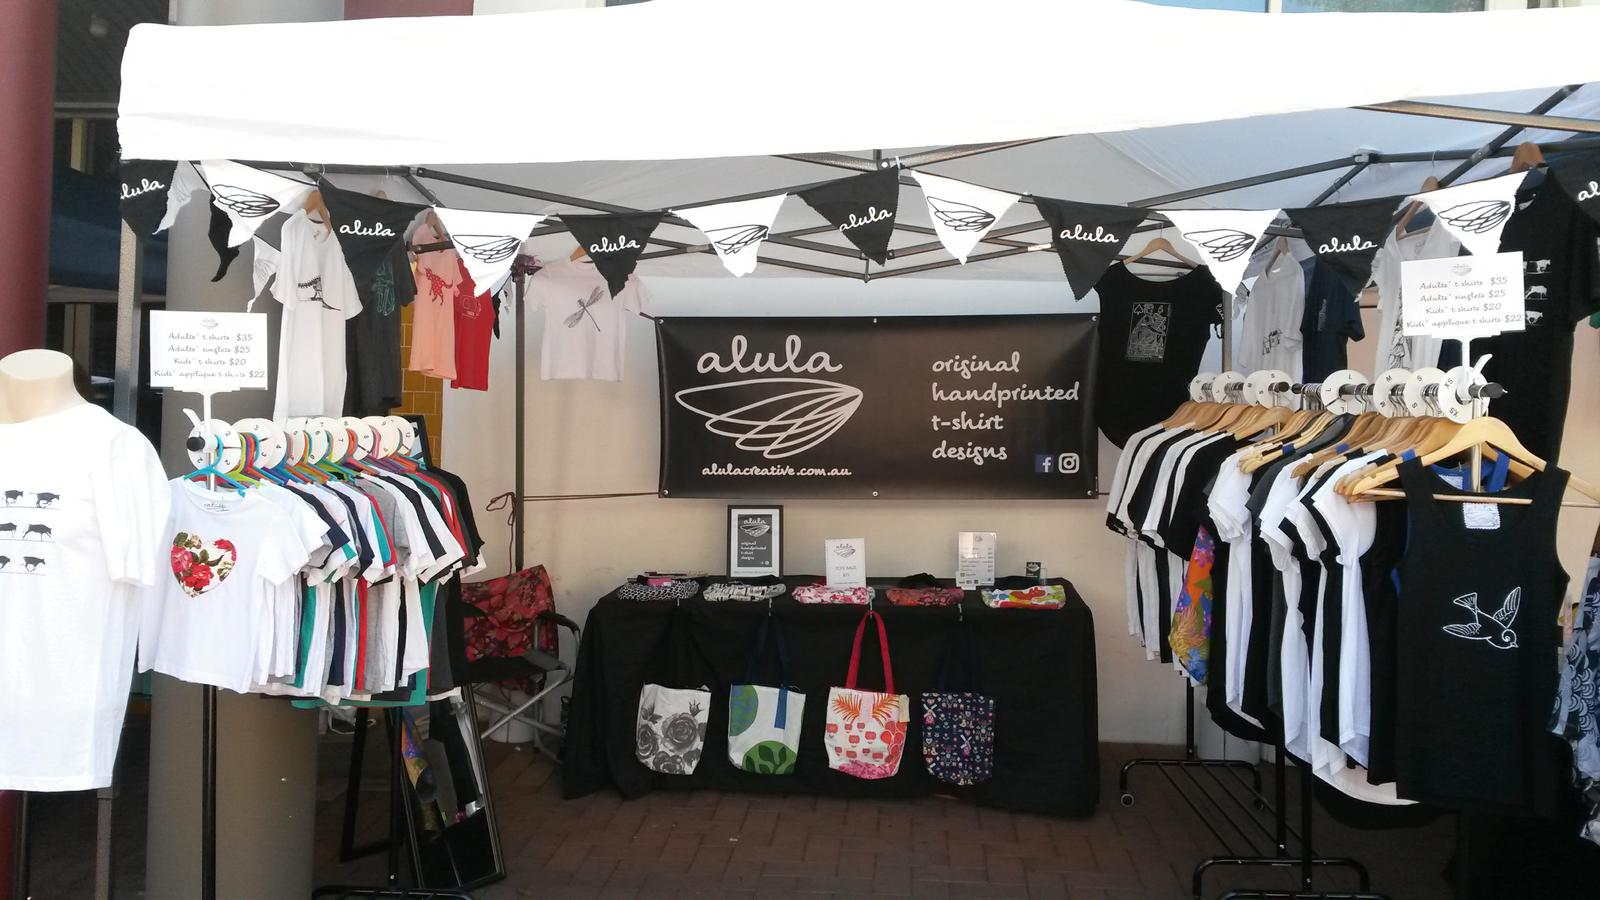 Alula Creative stall set up